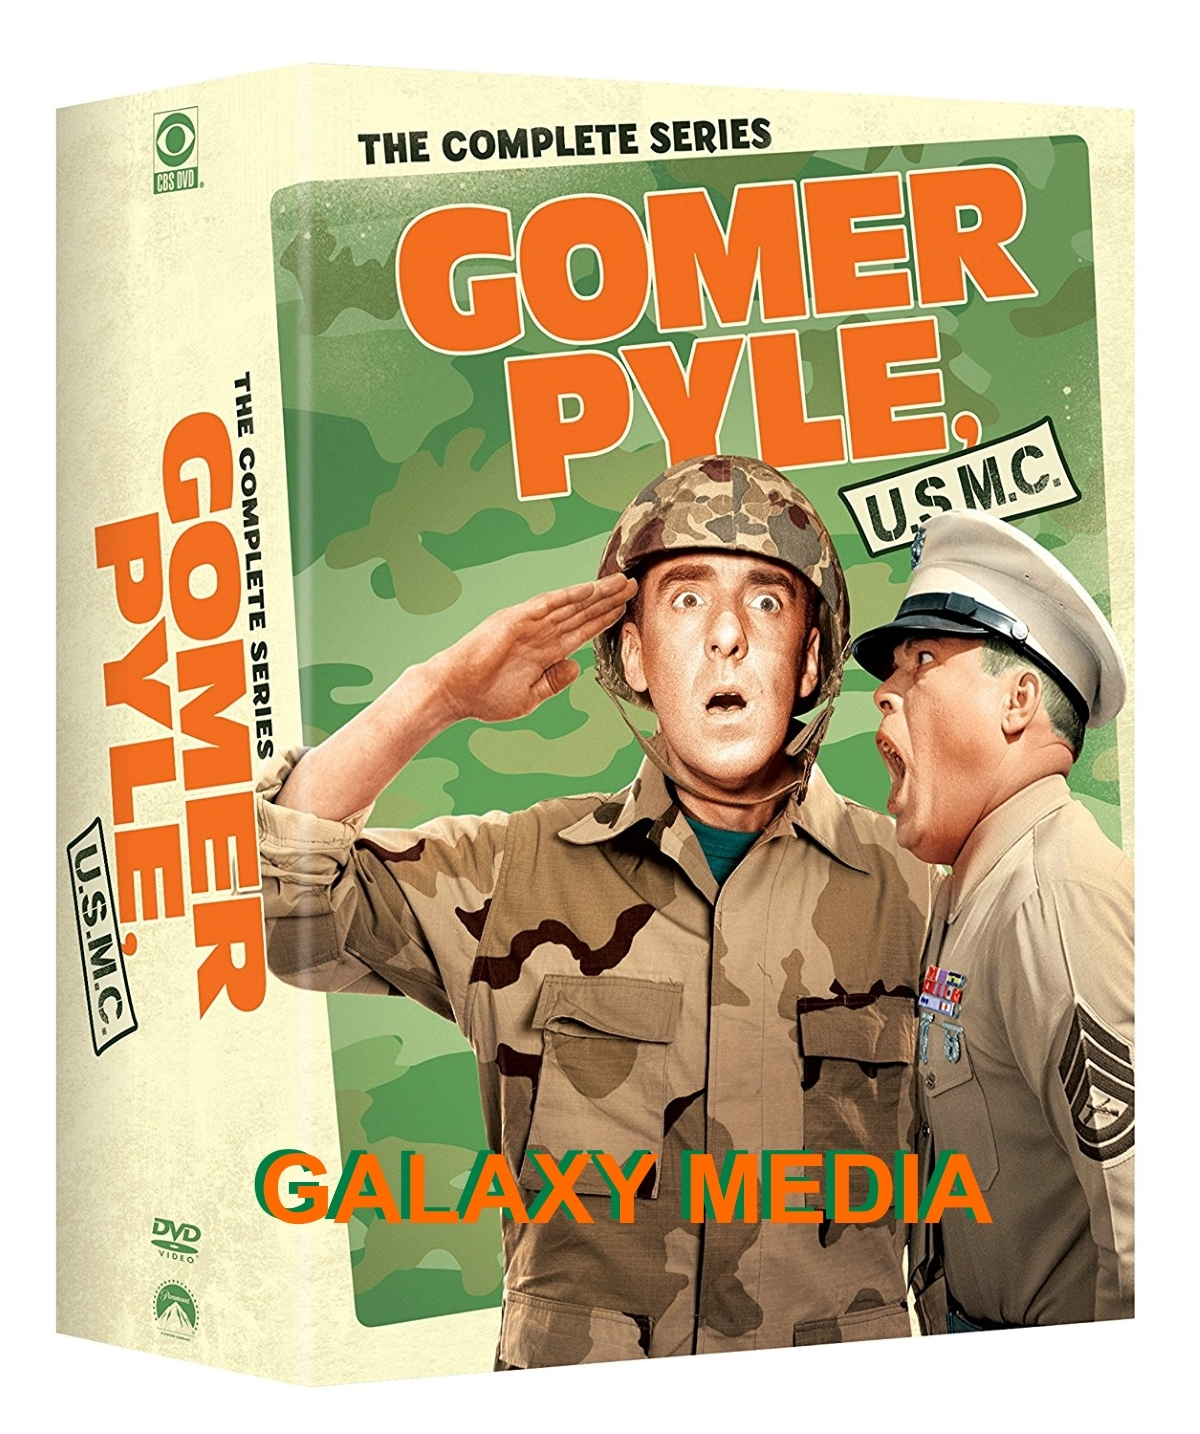 Gomer pyle u.s.m.c. the complete series season 1 5  dvd 2015 24 disc  1 2 3 4 5